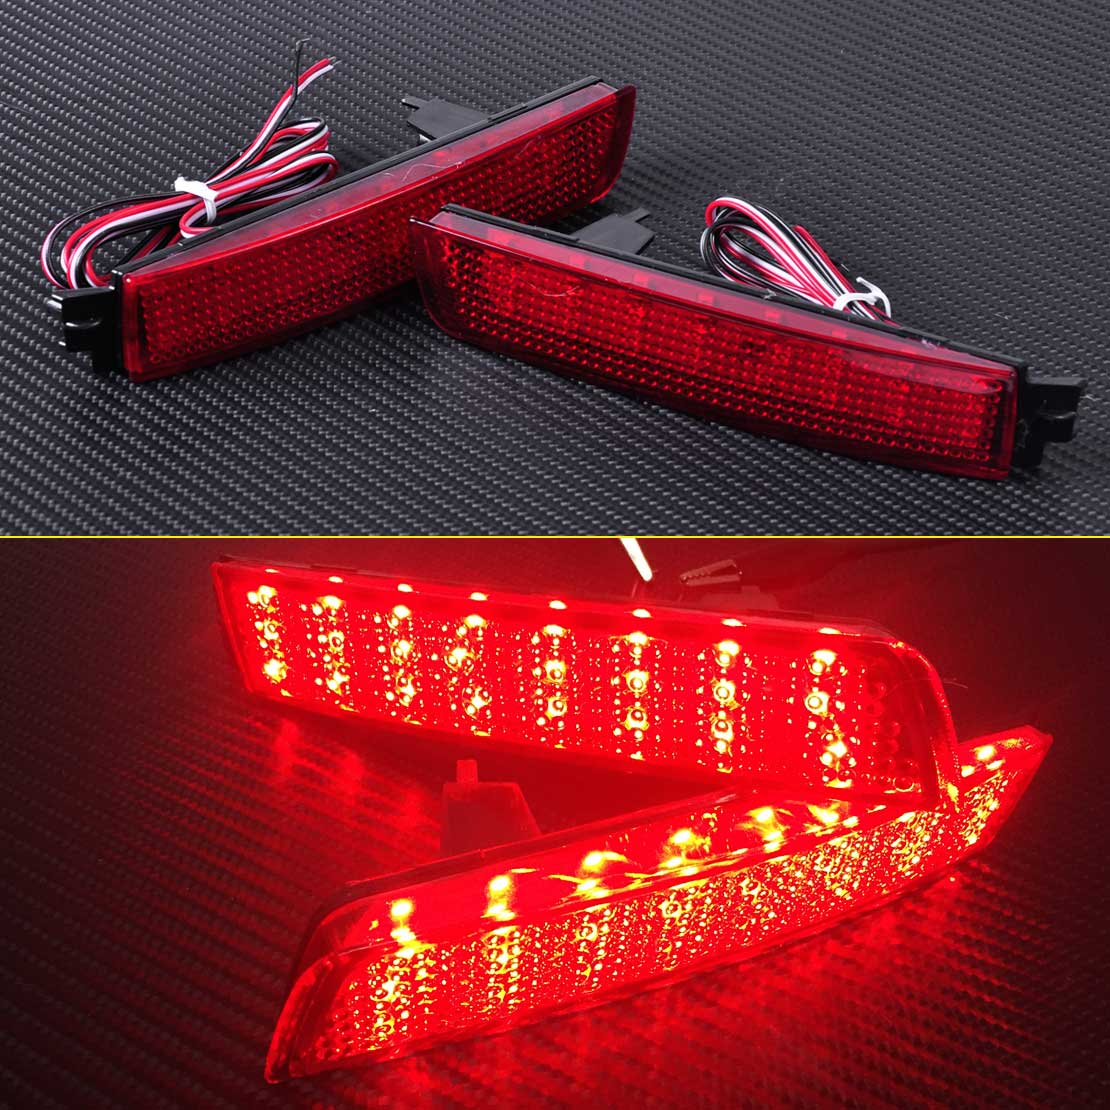 CITALL Red Lens LED Bumper Reflector Rear Tail Brake Light 26565-5C000 for Nissan Juke Quest Murano Sentra Infiniti FX35 FX37